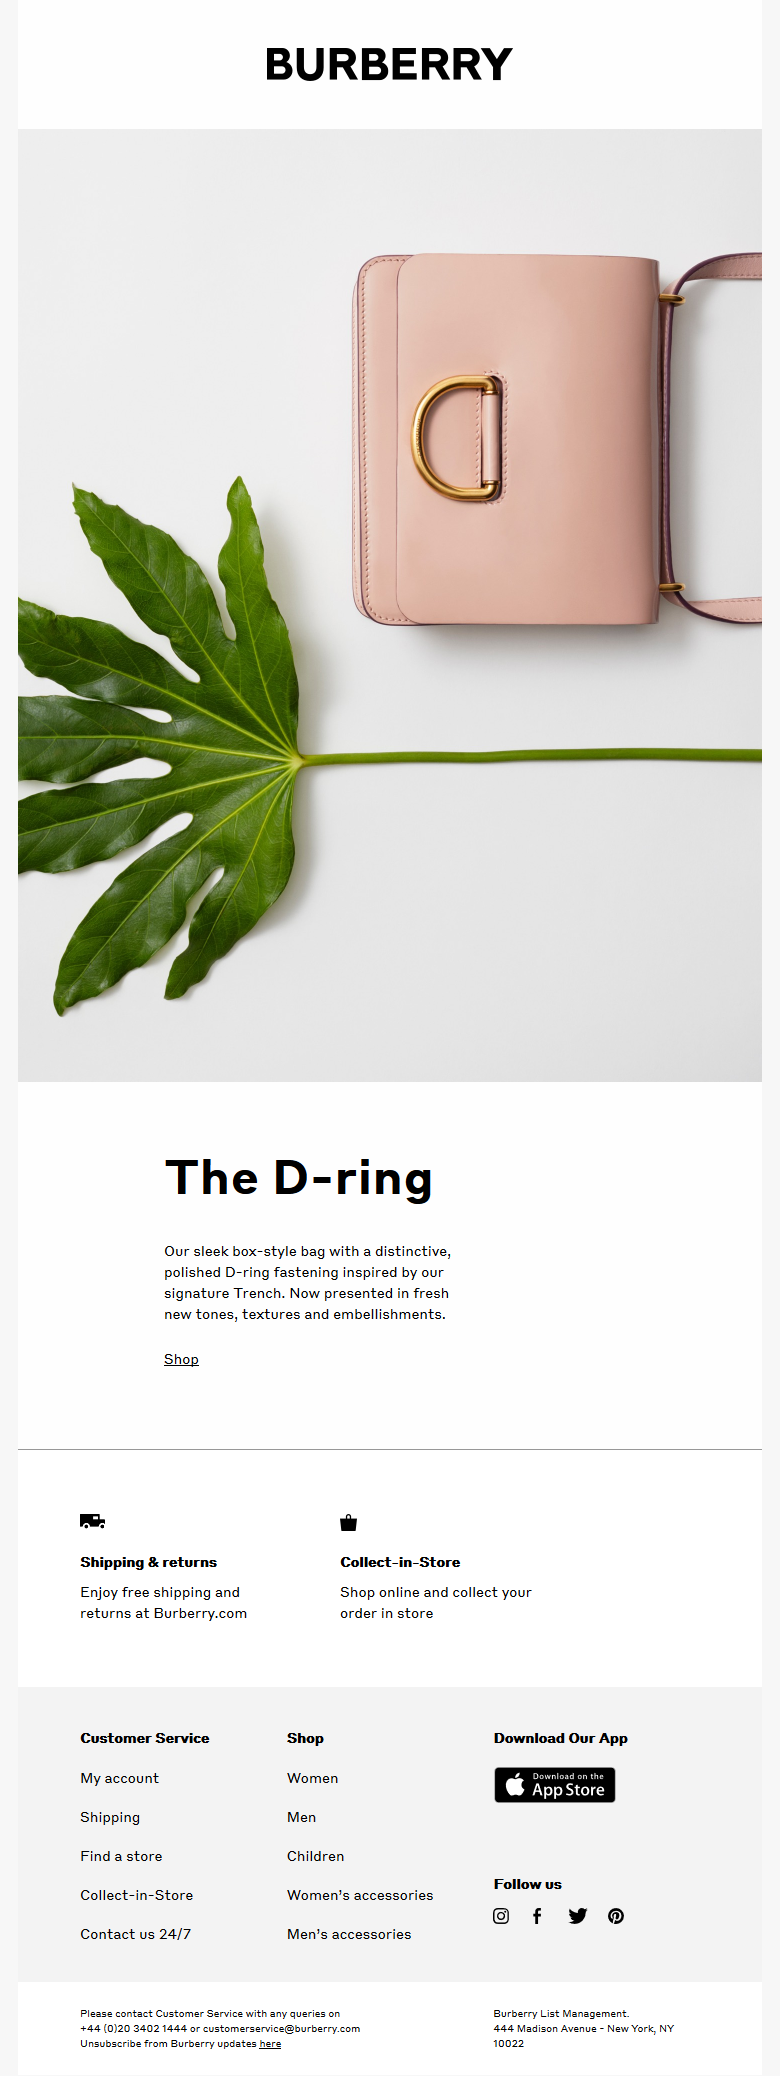 The D-ring